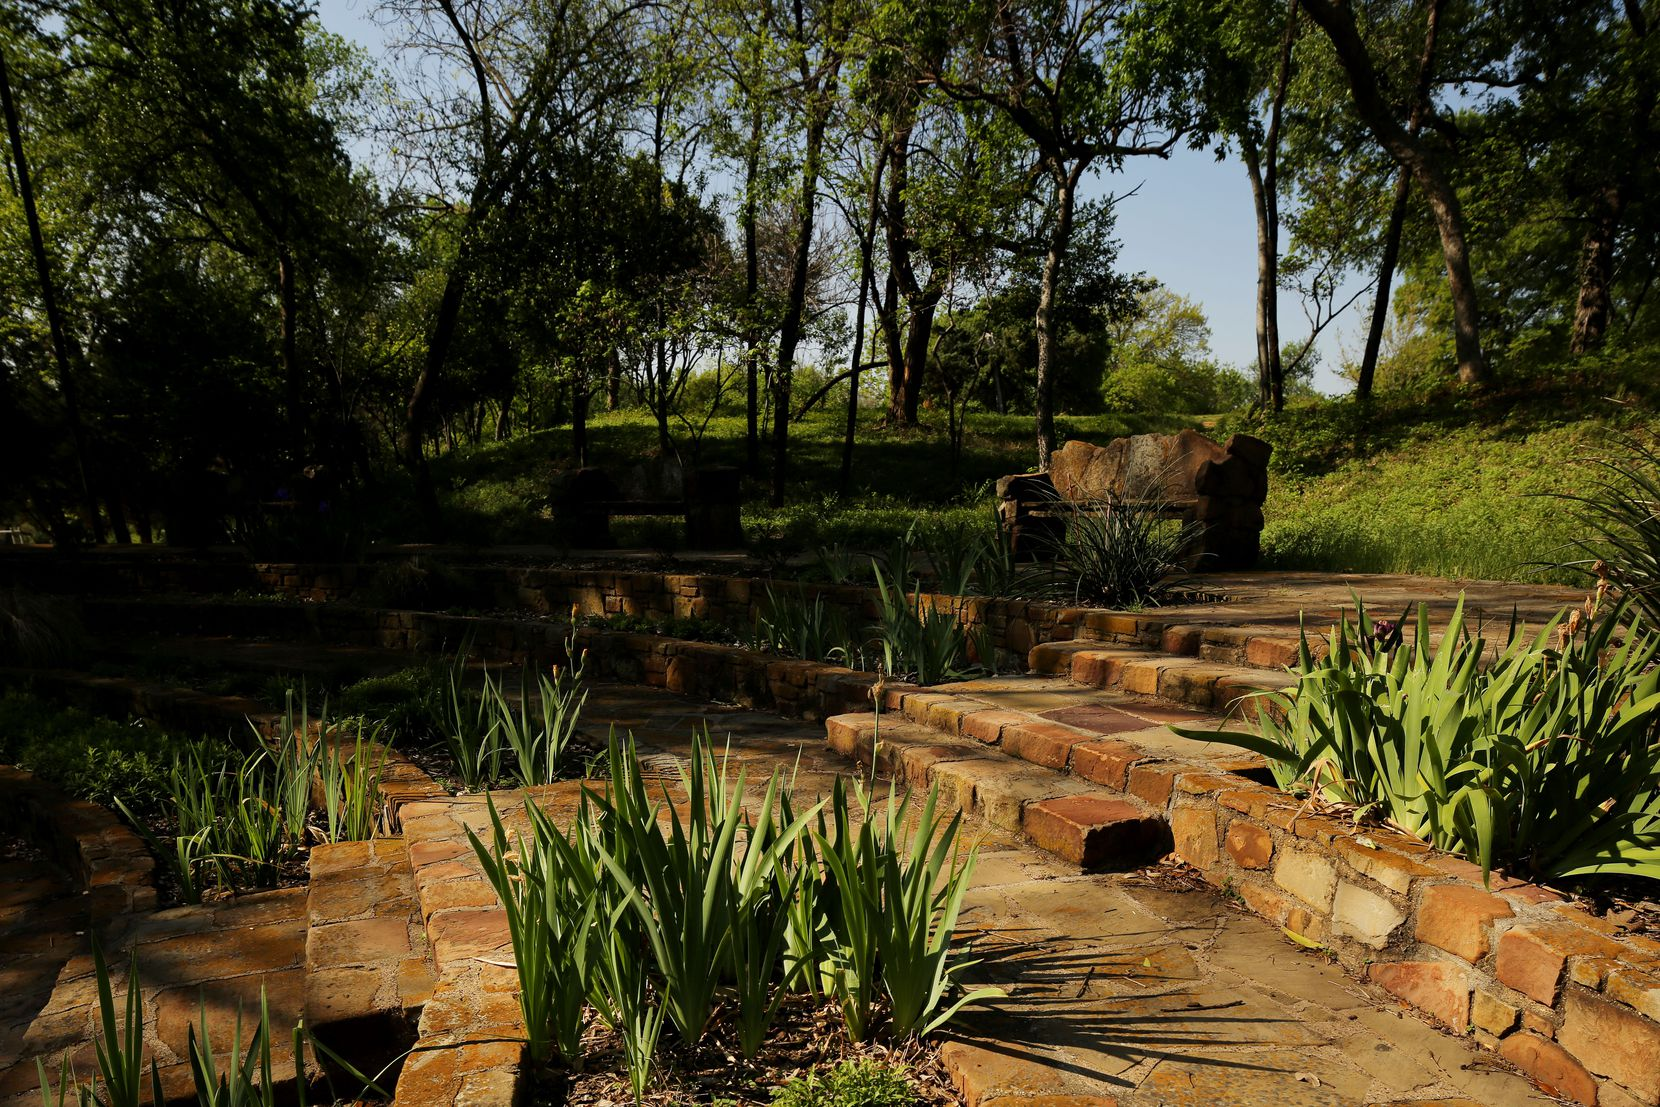 """After plans for the redevelopment of the ballpark stadium made headlines, Preservation Dallas listed Reverchon Park's historic stonework on its 2020 """"most endangered"""" list."""